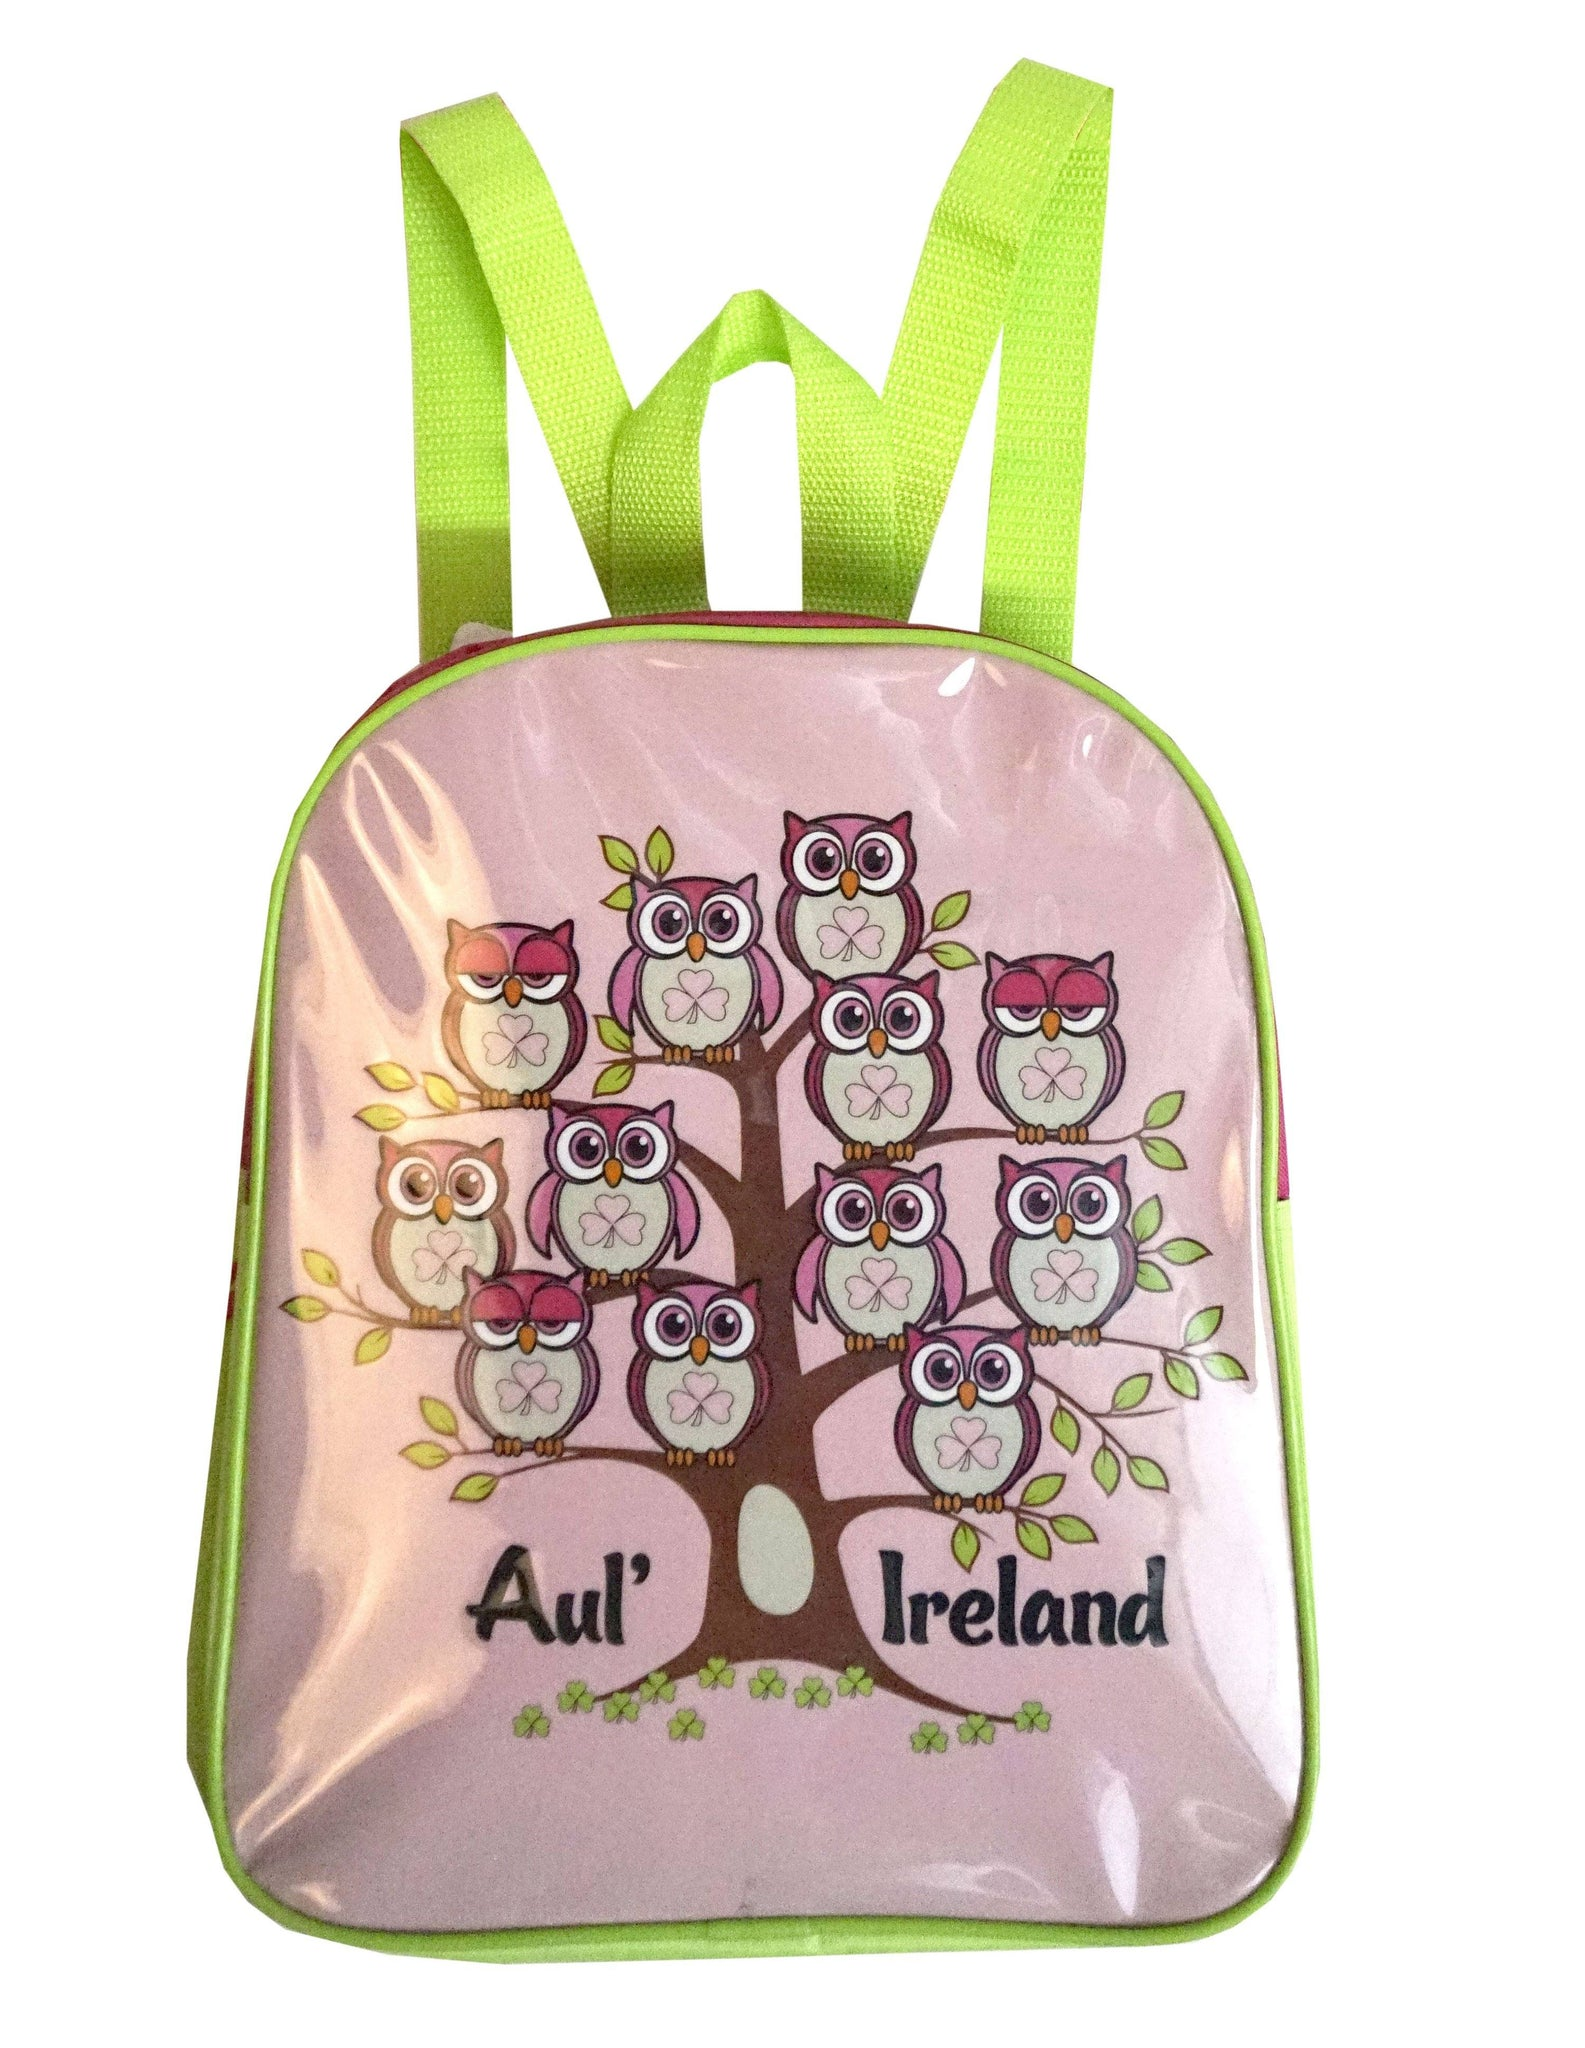 Kids Back Pack, Bags - seasonsofireland